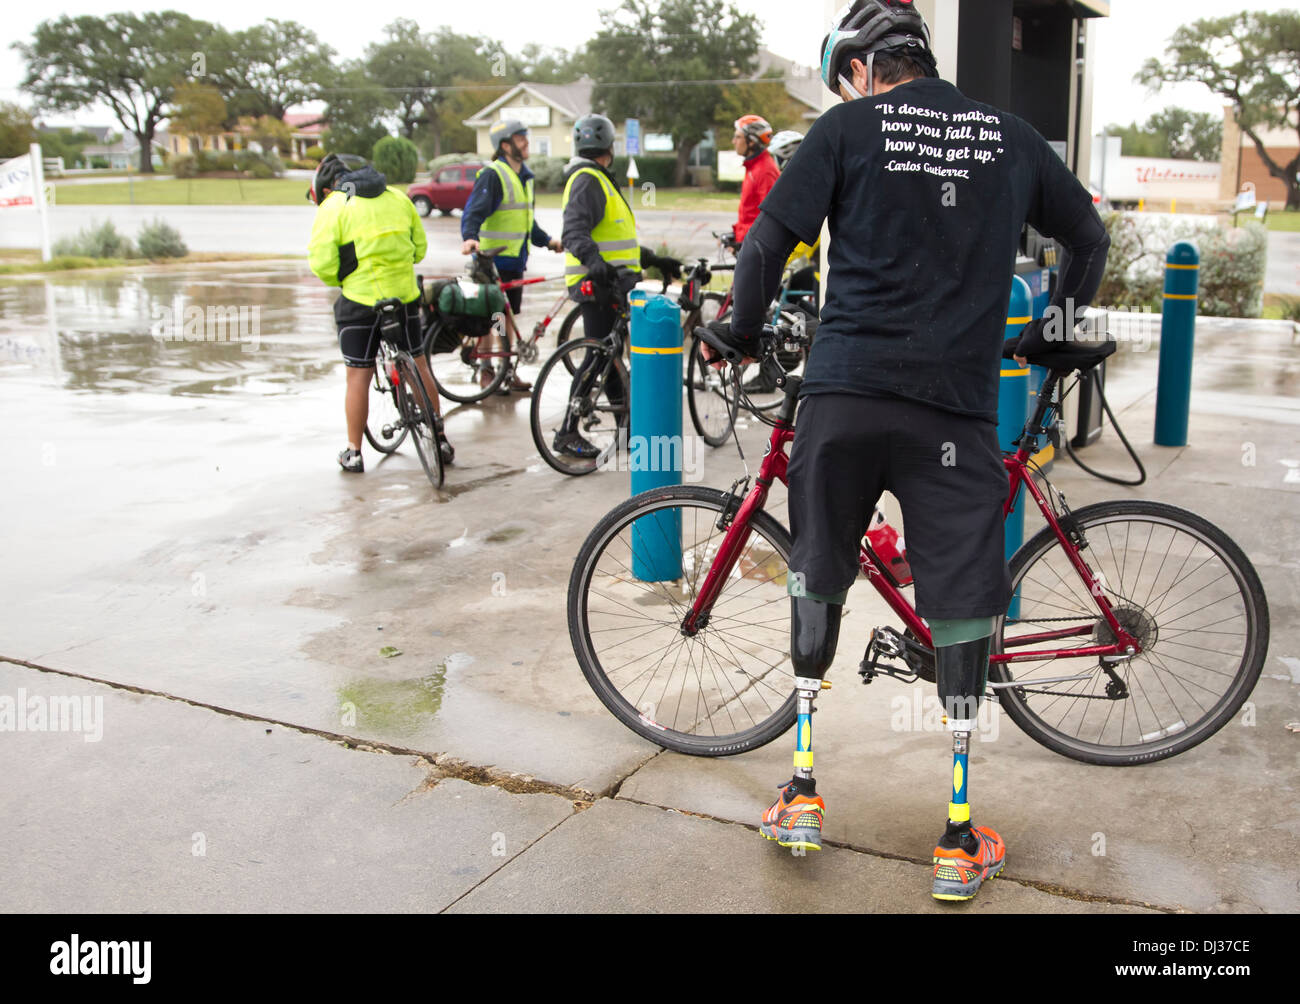 Mexican national lost his legs to cartel violence, rides bike from El Paso, Texas to Austin to raise awareness - Stock Image